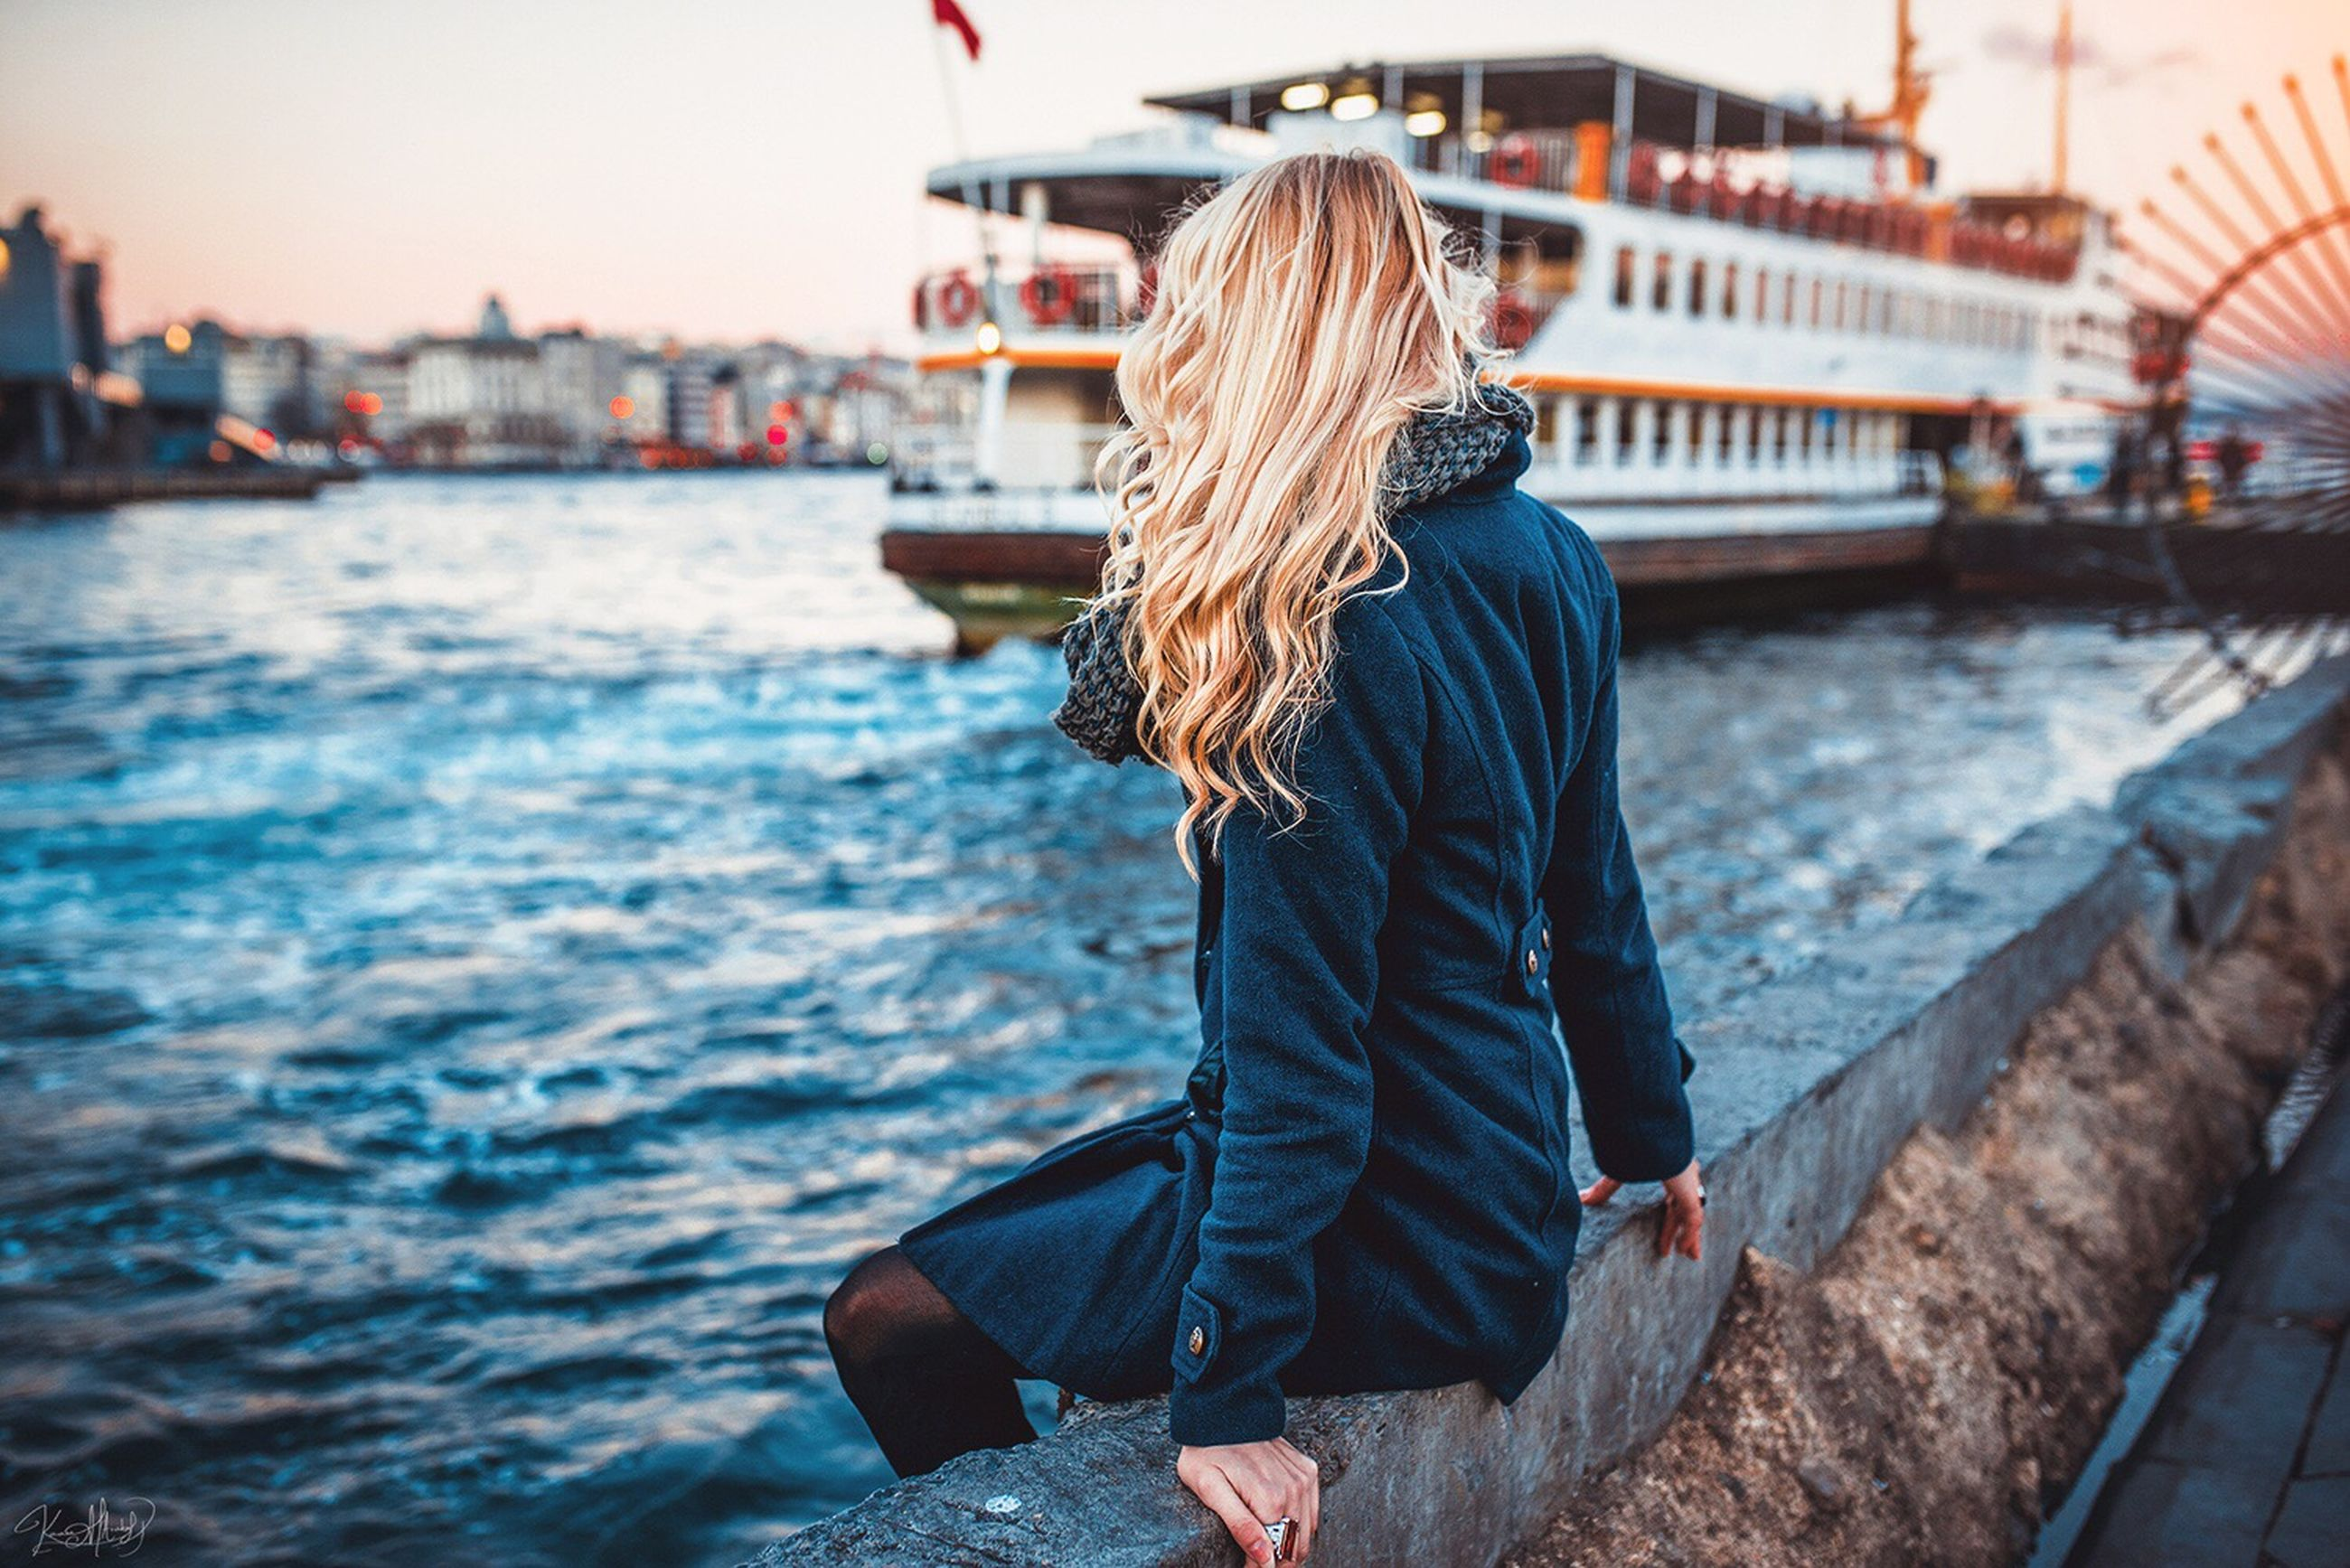 water, focus on foreground, lifestyles, rear view, sea, leisure activity, city, built structure, nautical vessel, person, river, building exterior, architecture, transportation, men, incidental people, harbor, outdoors